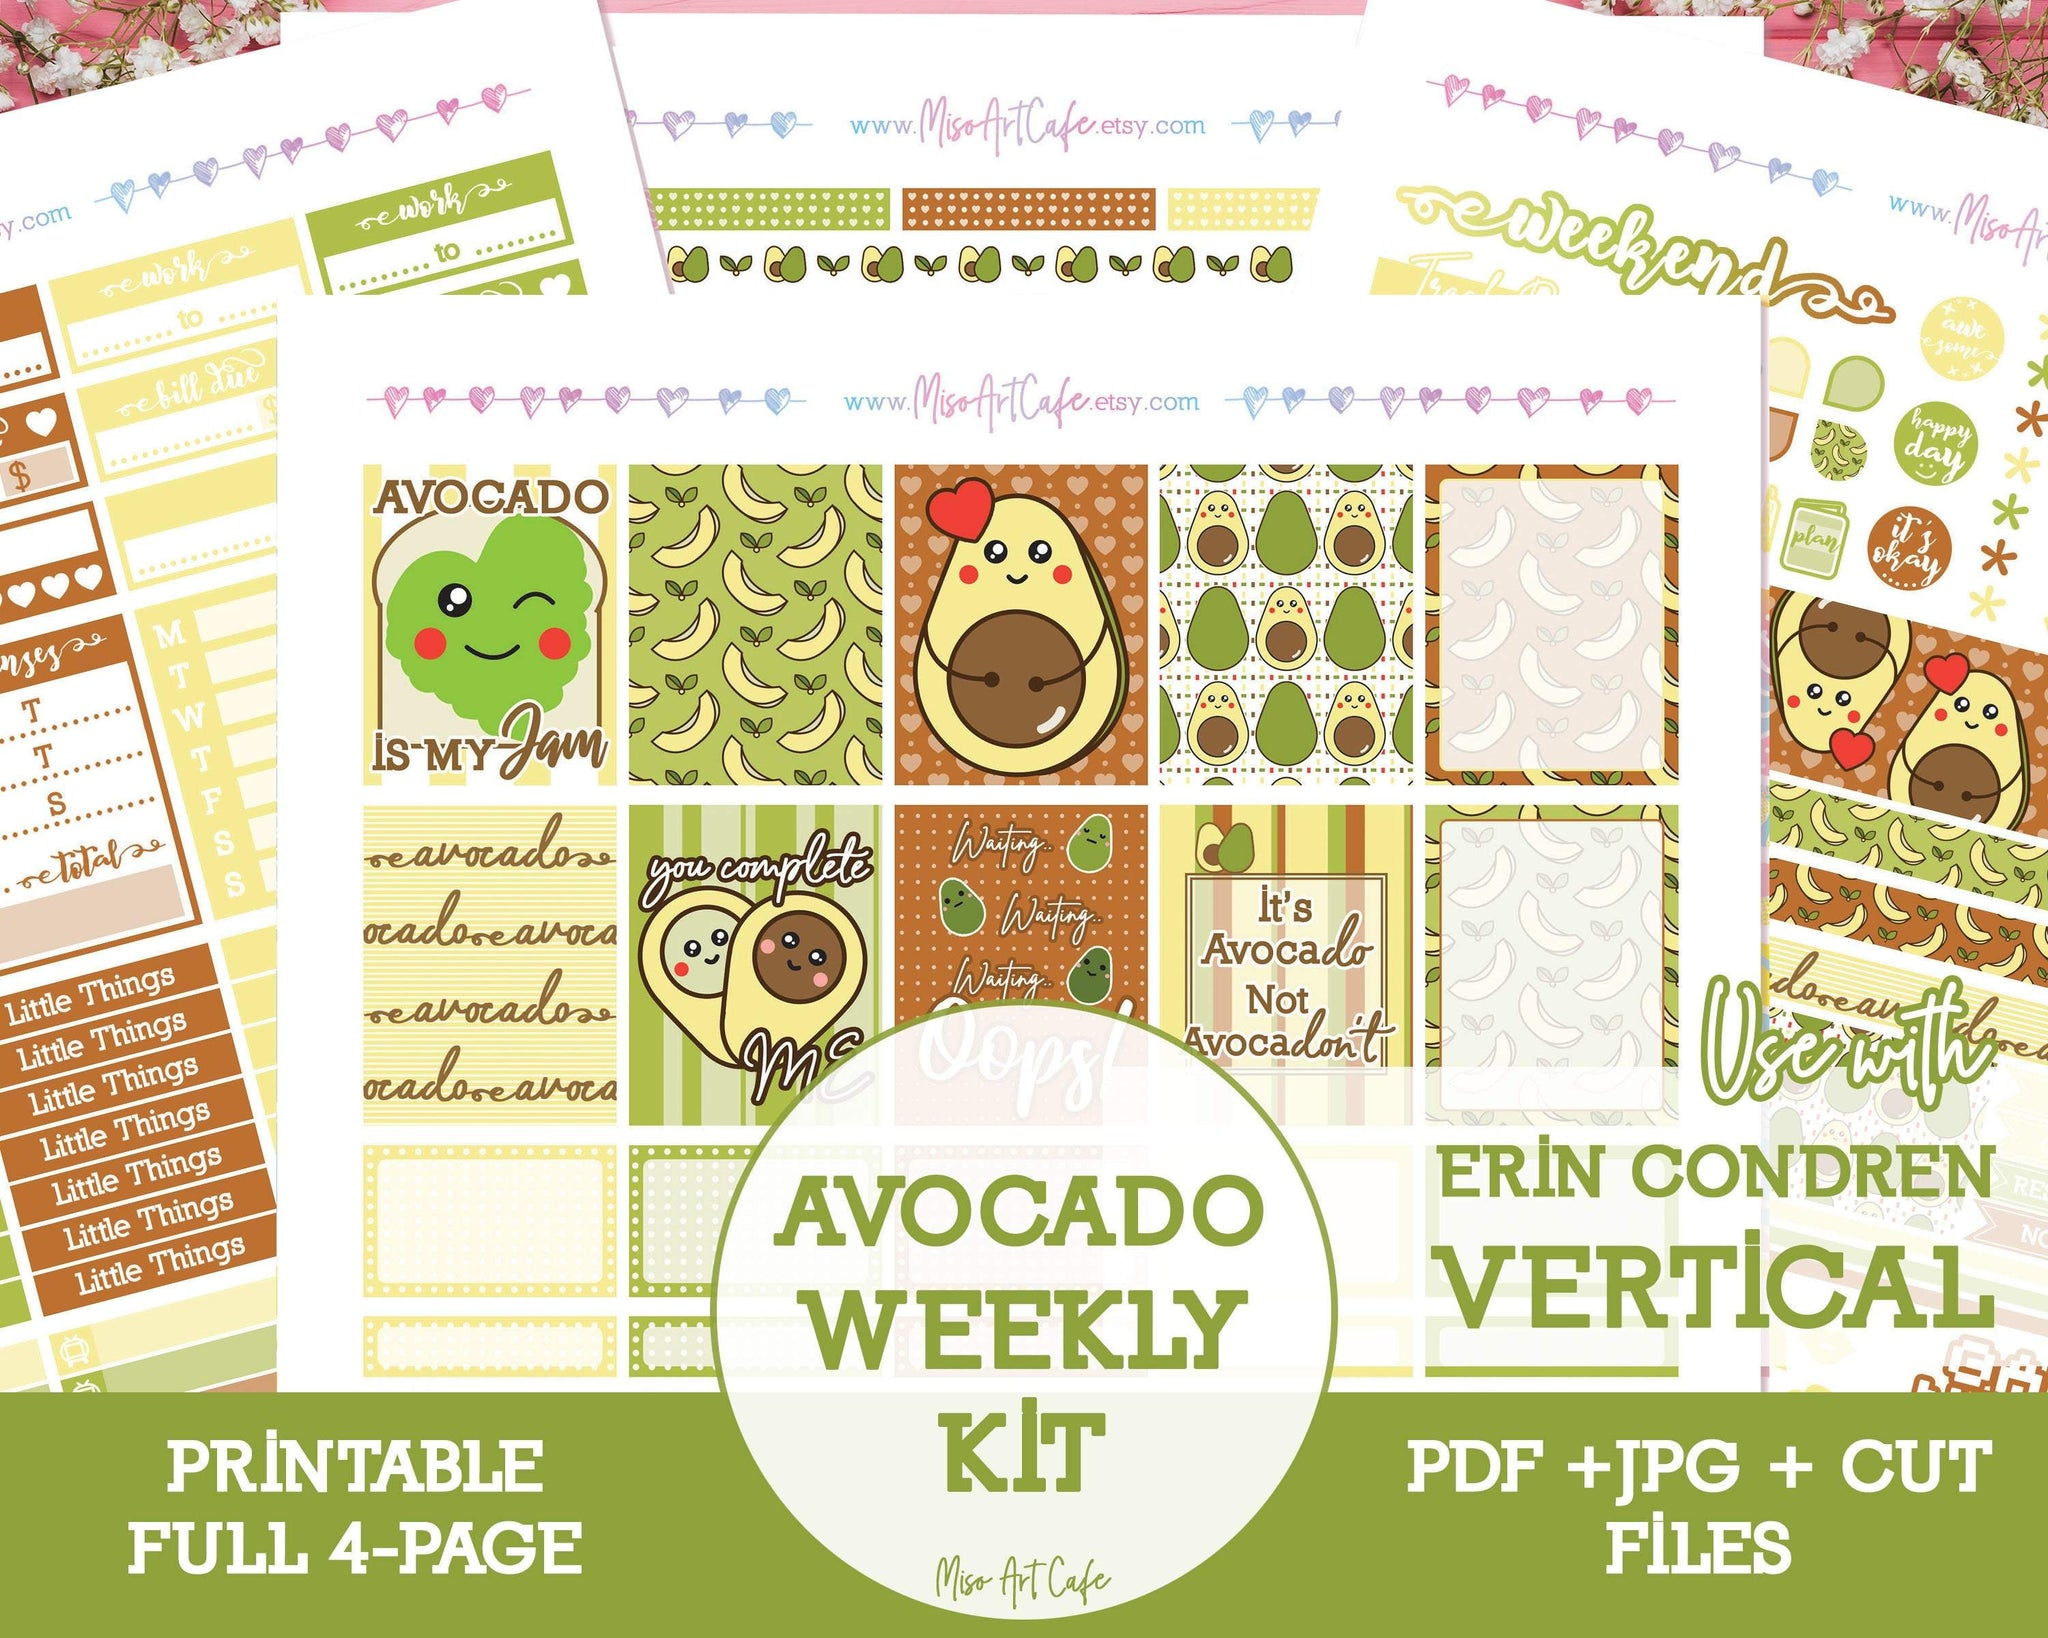 Printable Avocado Weekly Kit - Erin Condren Vertical - Miso Art Cafe